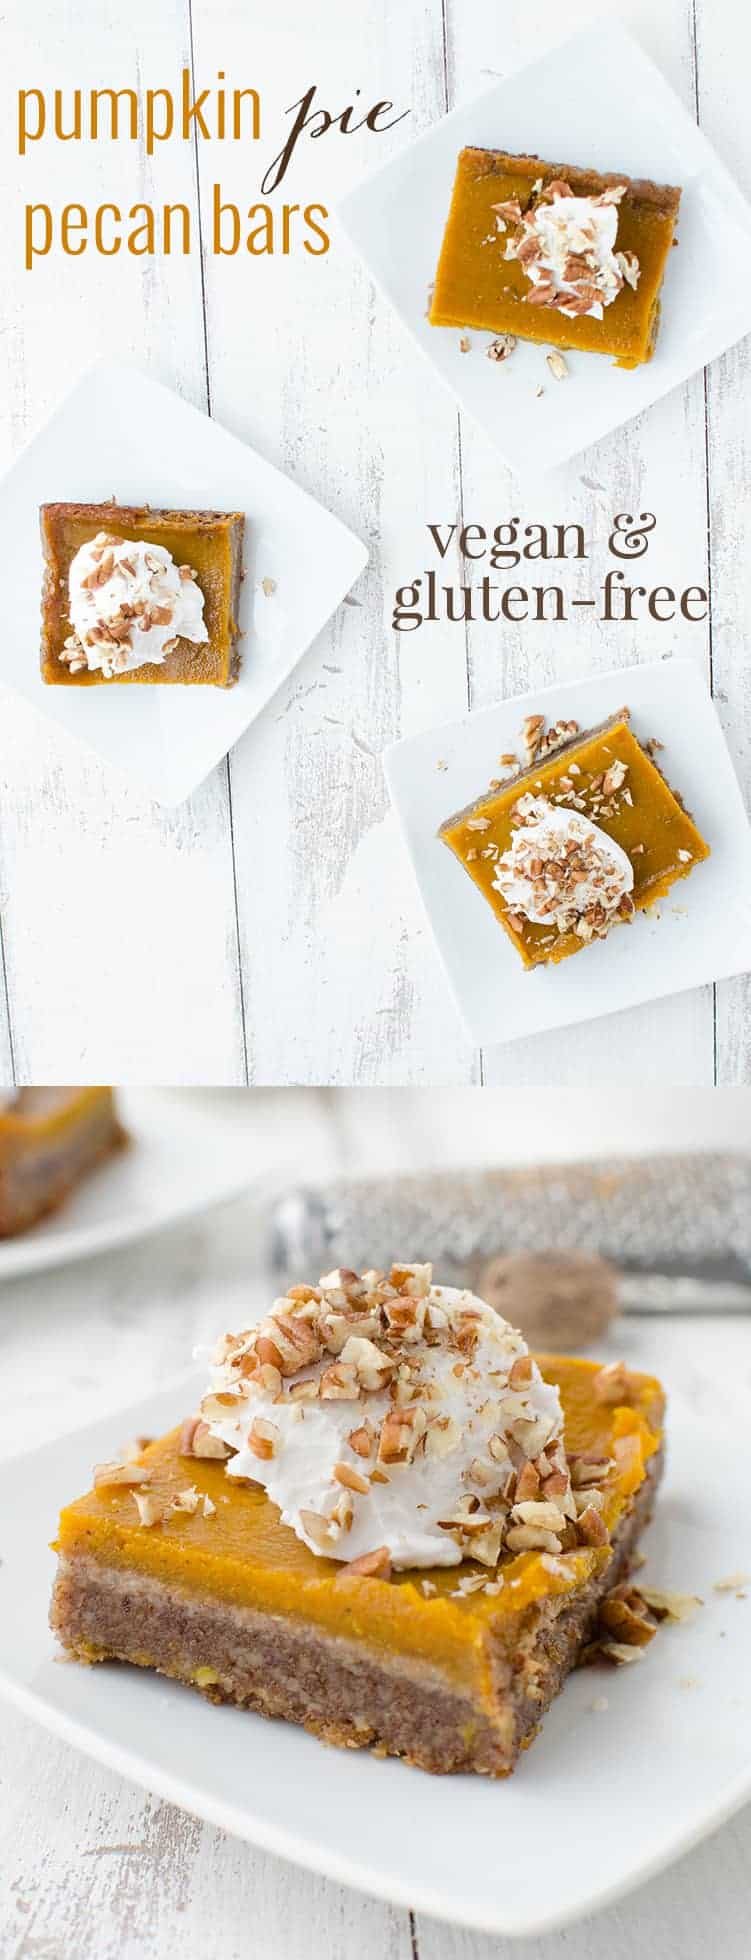 Vegan and Gluten-Free Pumpkin Pie Pecan Bars! Now you don't have to choose between pies! This dessert is the BEST- a must for Thanksgiving. Topped with Cinnamon-Vanilla Coconut Cream. | www.delishknowledge.com